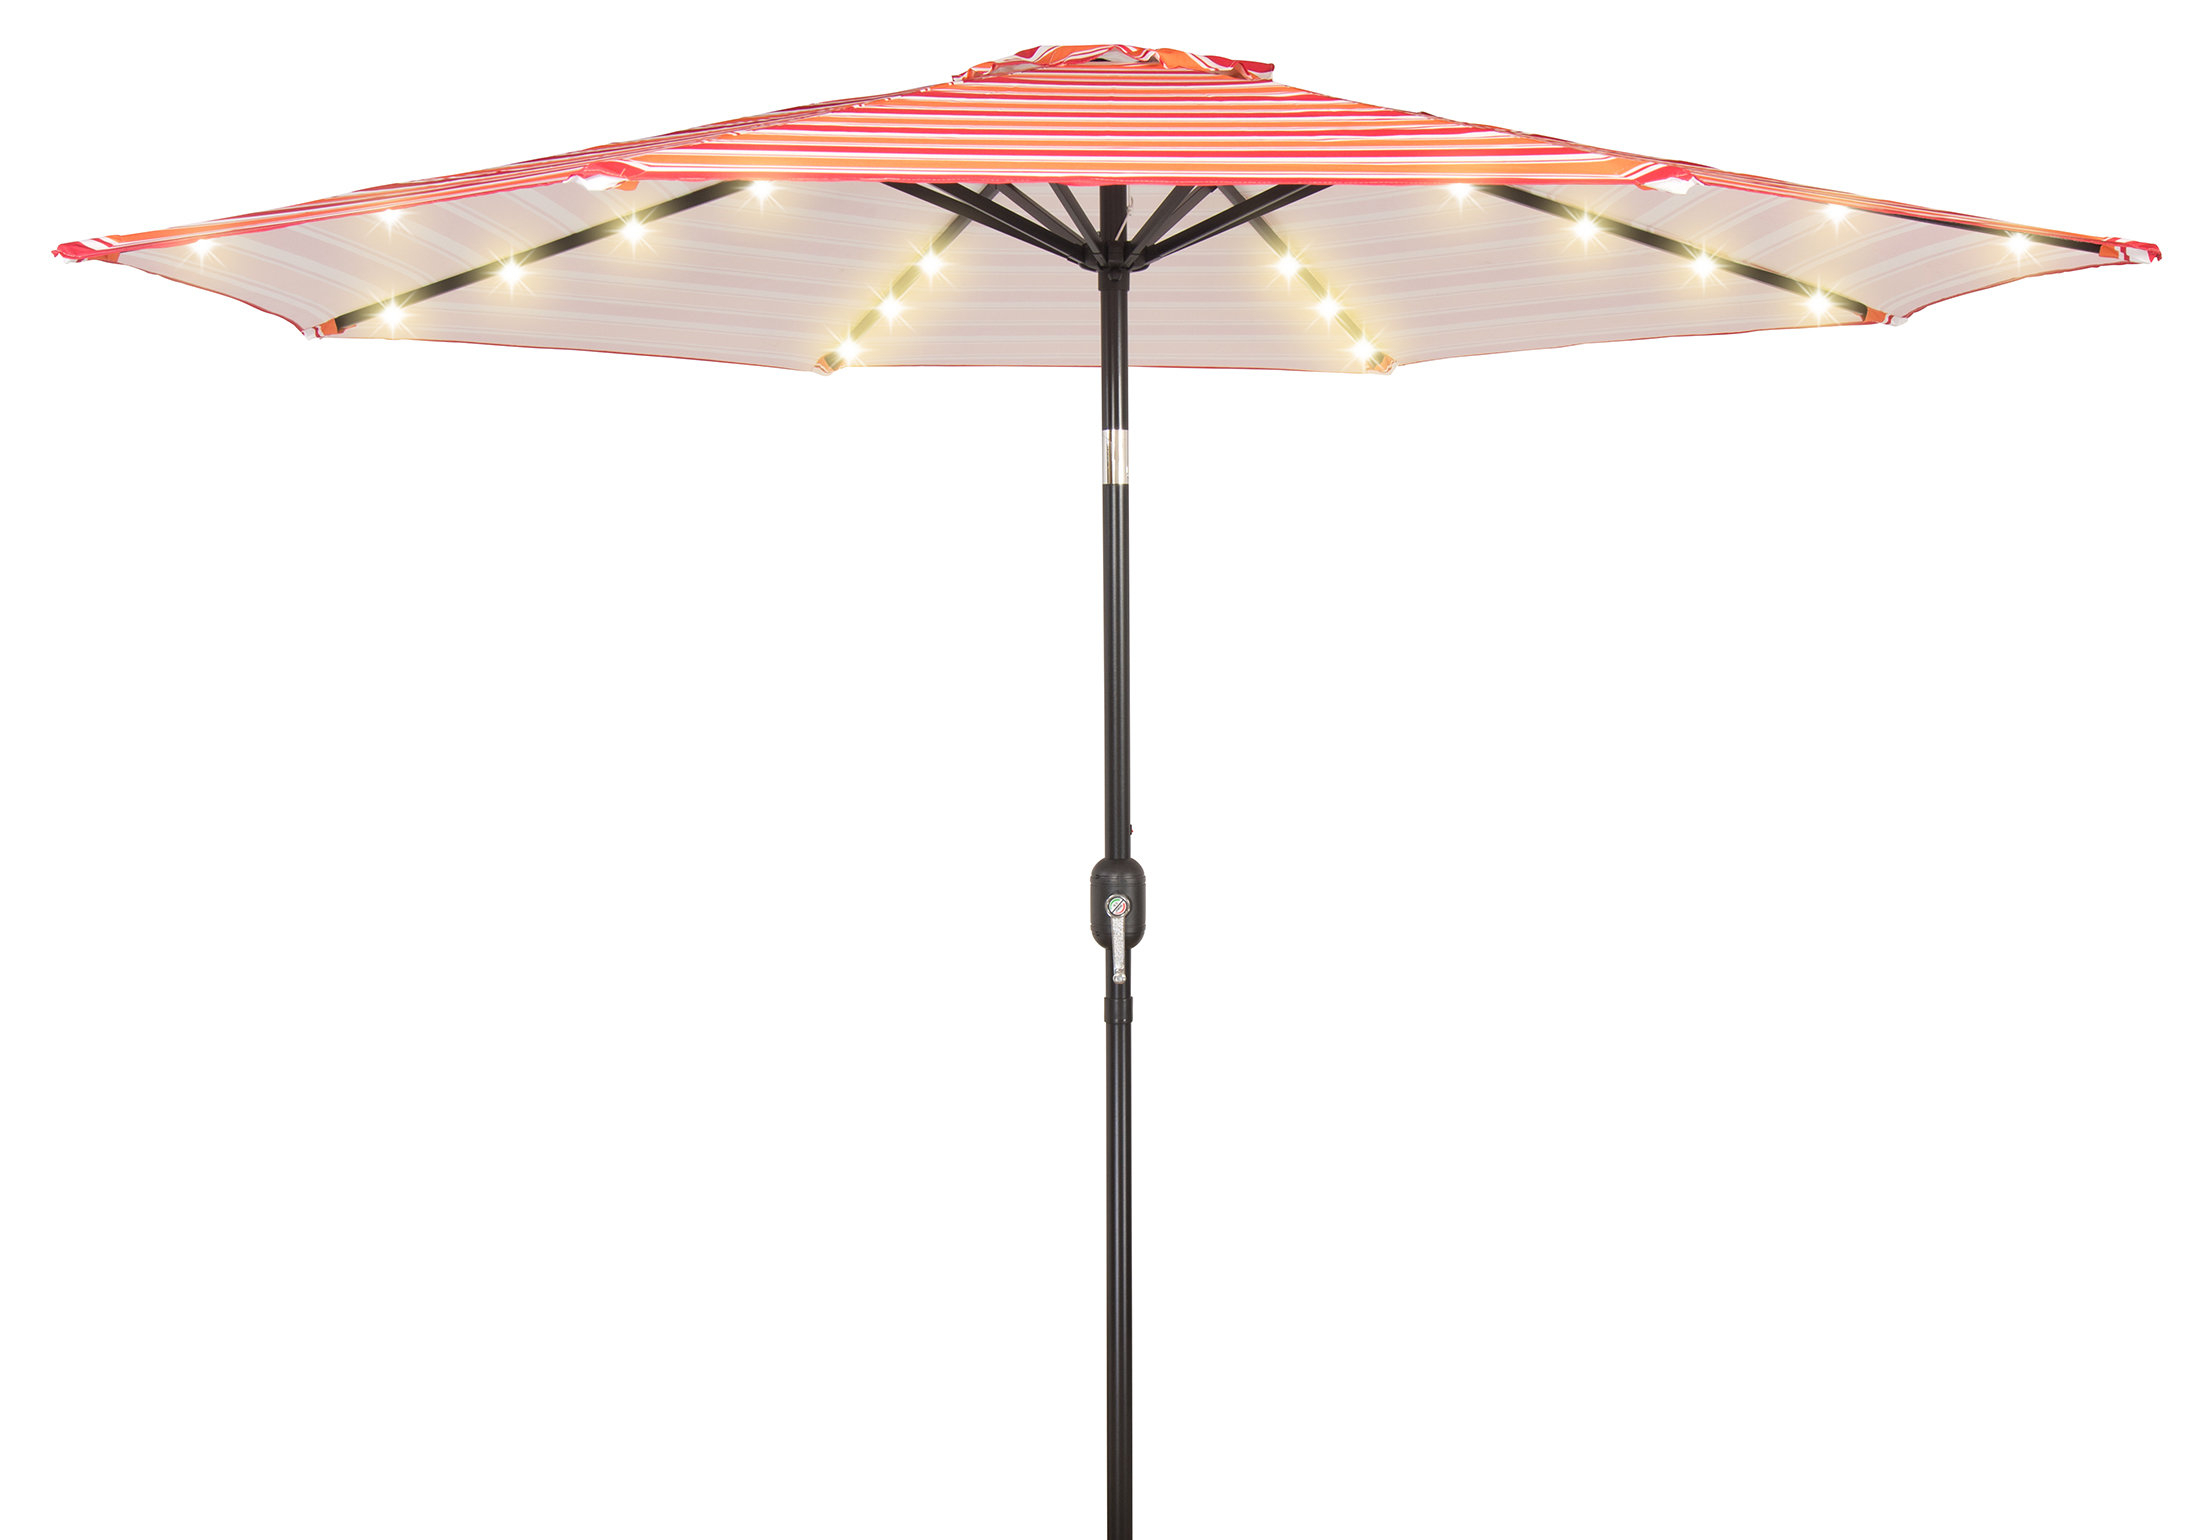 9' Lighted Umbrella Intended For Most Current Branam Lighted Umbrellas (View 6 of 20)